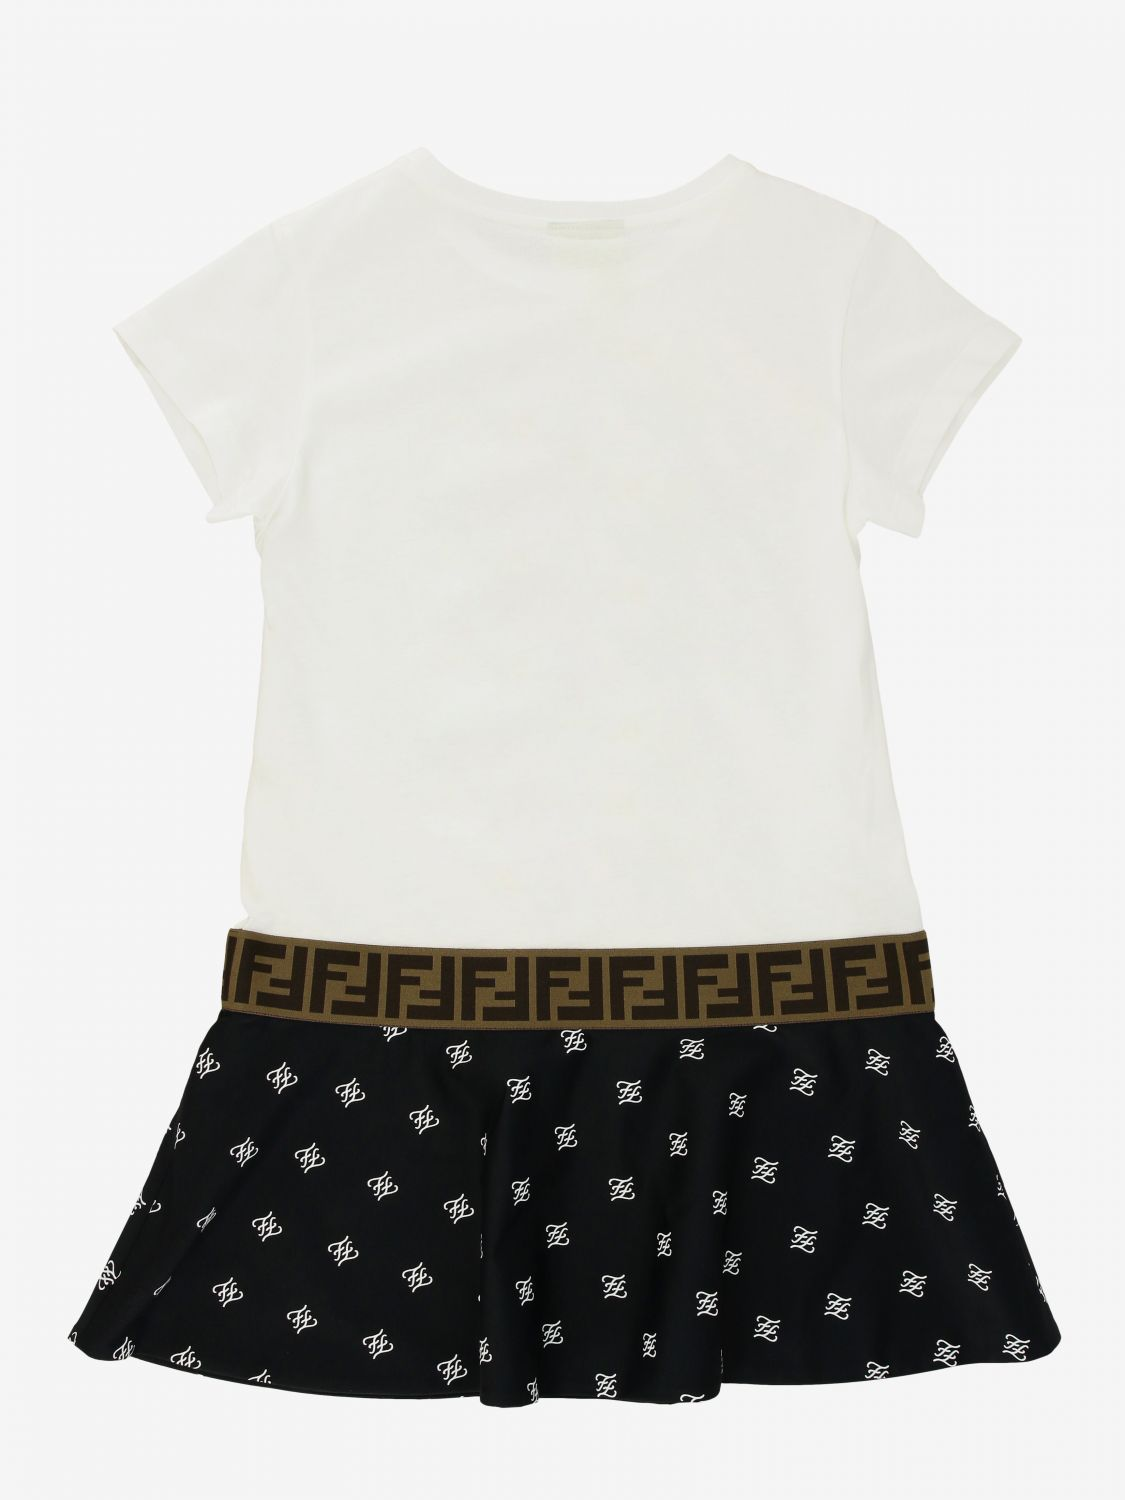 Fendi dress with all over FF logo and bottom white 2